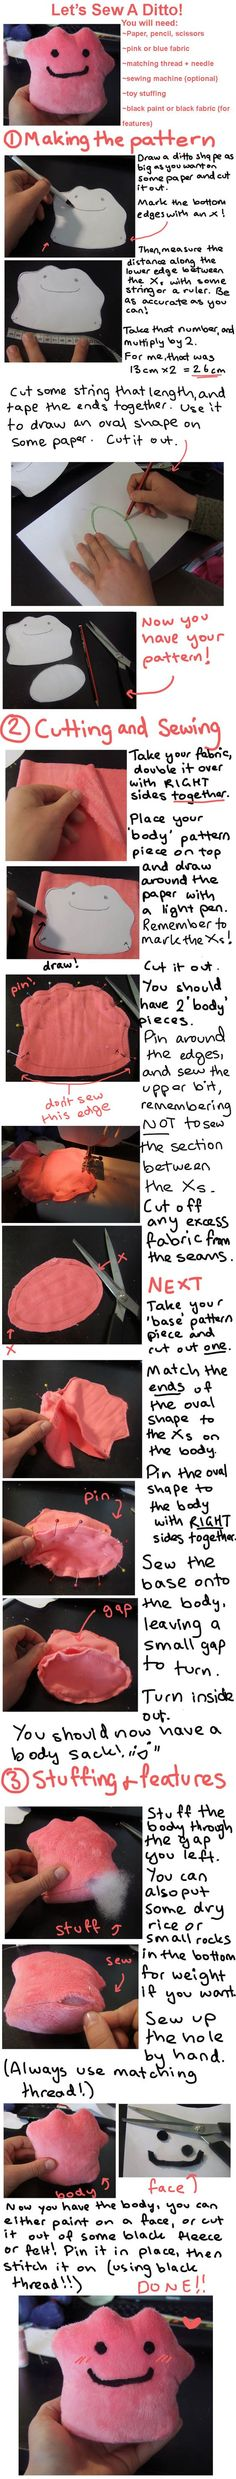 Pokemon Plush Tutorial | ... Sew A Ditto! beginner's plushie tutorial by SilkenCat on deviantART: